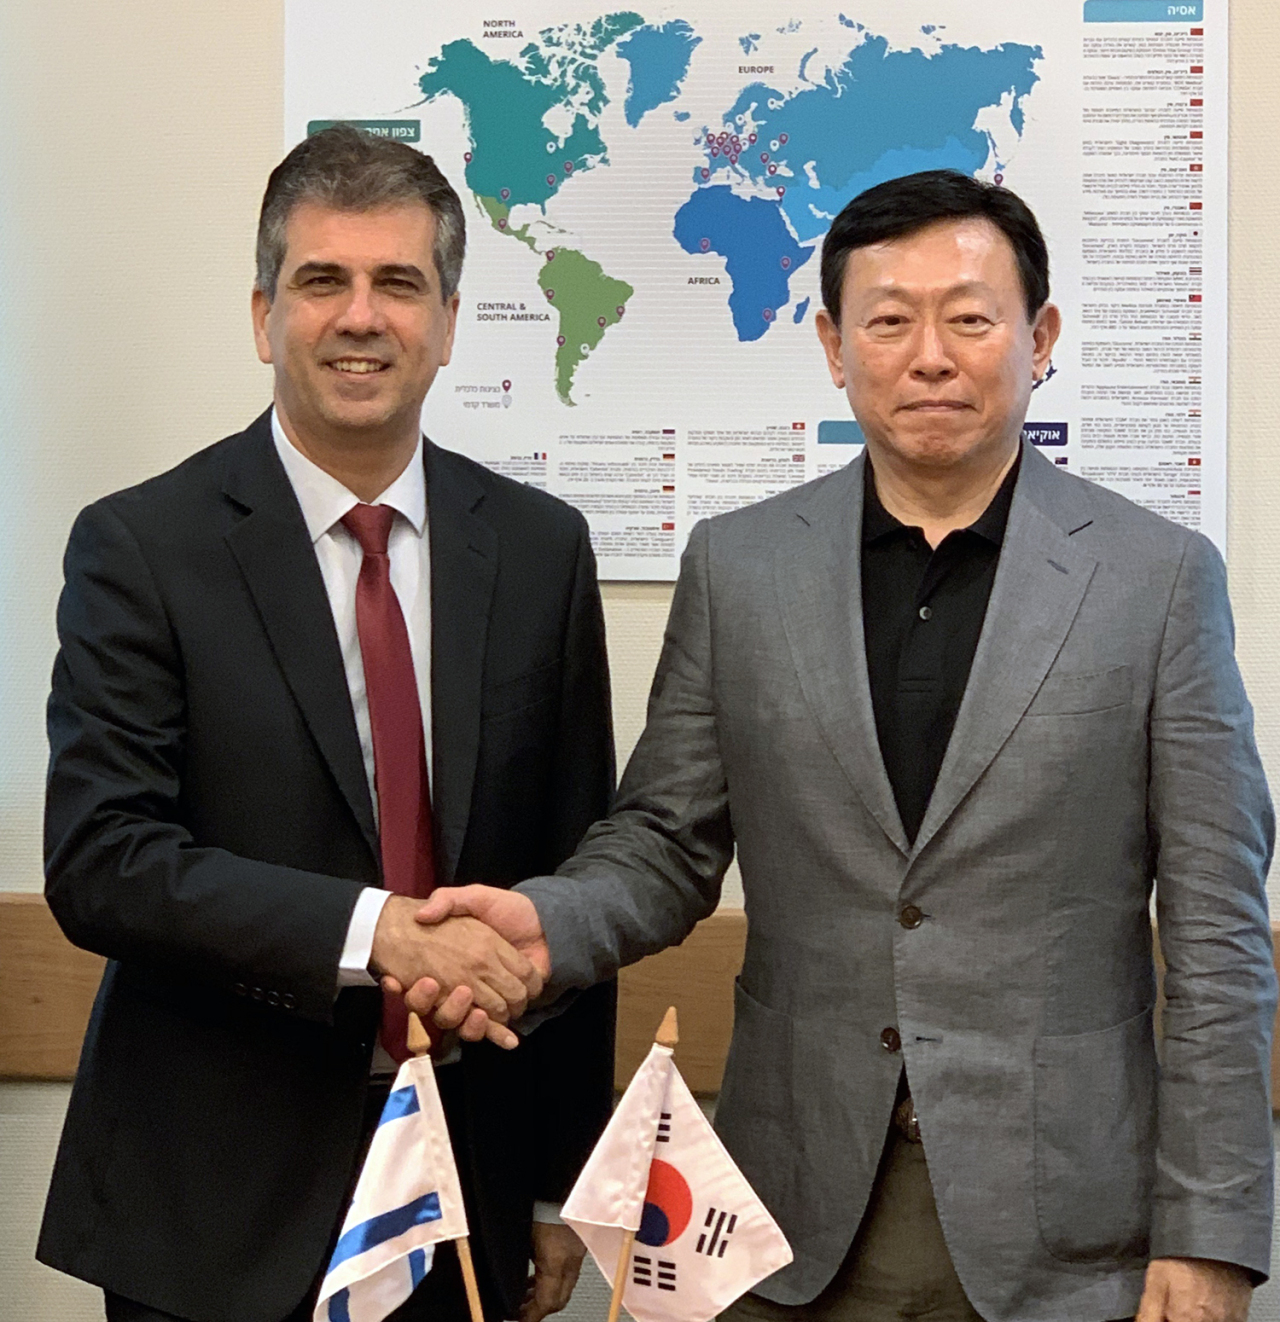 Lotte Group Chairman Shin Dong-bin (right) and Economy and Industry Minister of Israel Eli Cohen shake hands during their meeting in Jerusalem on Sunday. (Lotte Group)